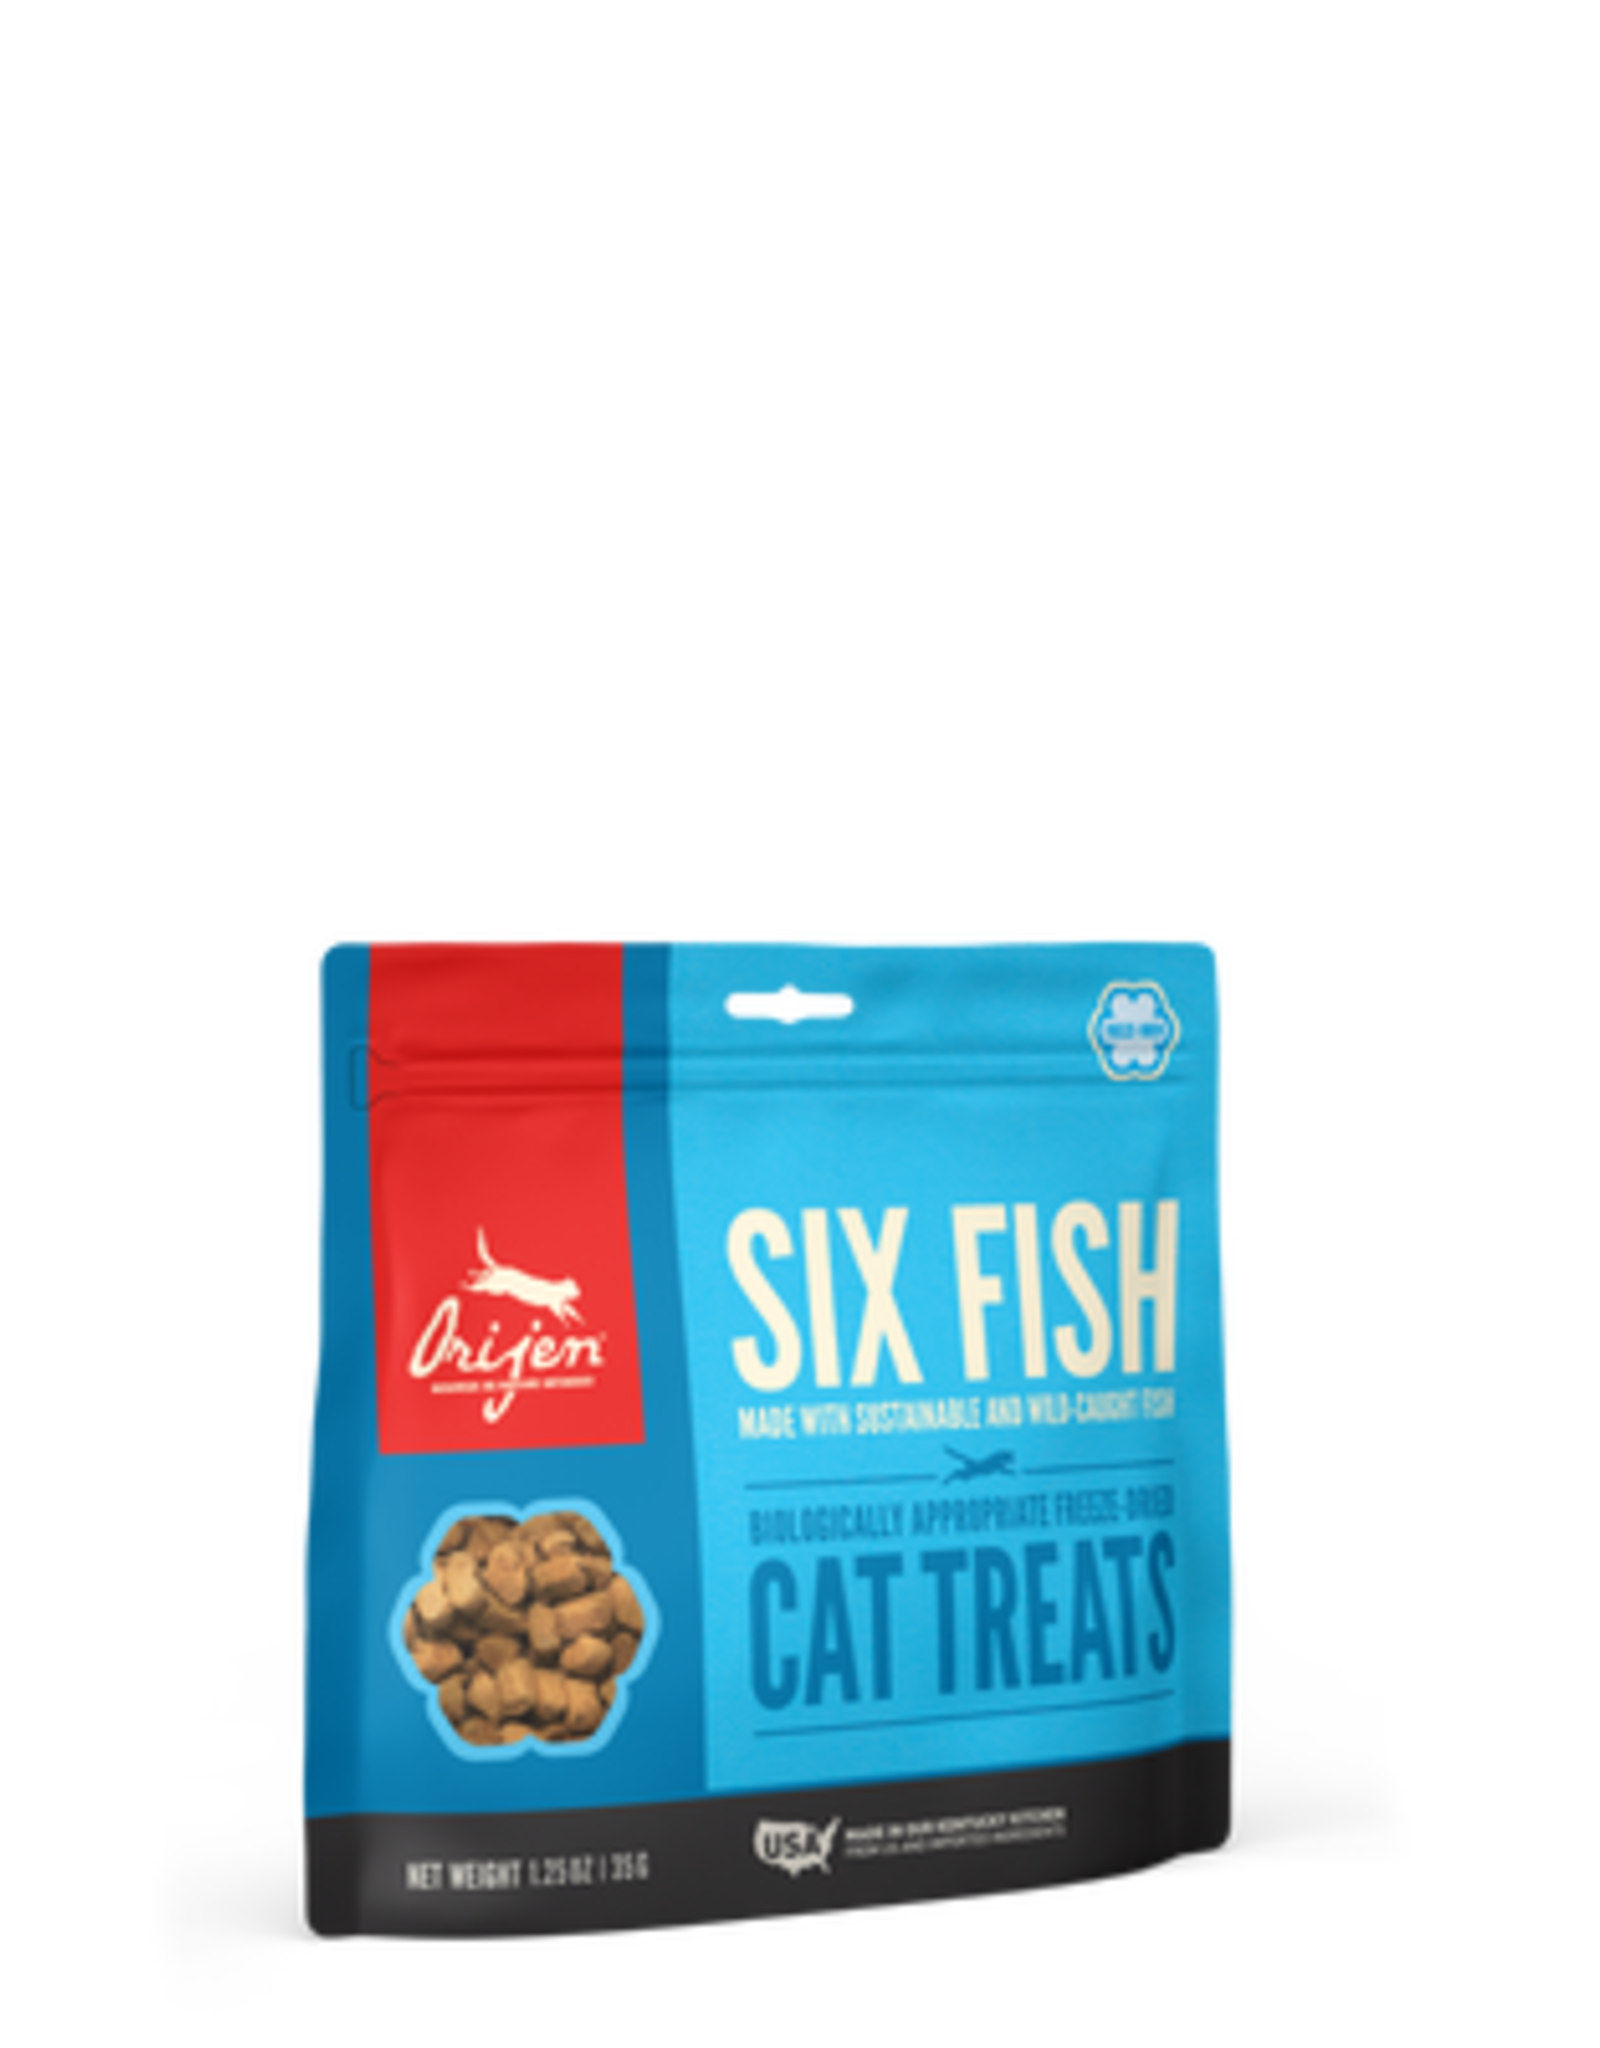 Orijen Orijen Freeze Dried Cat Treats 6 Fish Recipe with Sustainable & Wild-Caught Fish Mackerel, Flounder, Monkfish, Herring, Redfish, & Hake1.25oz